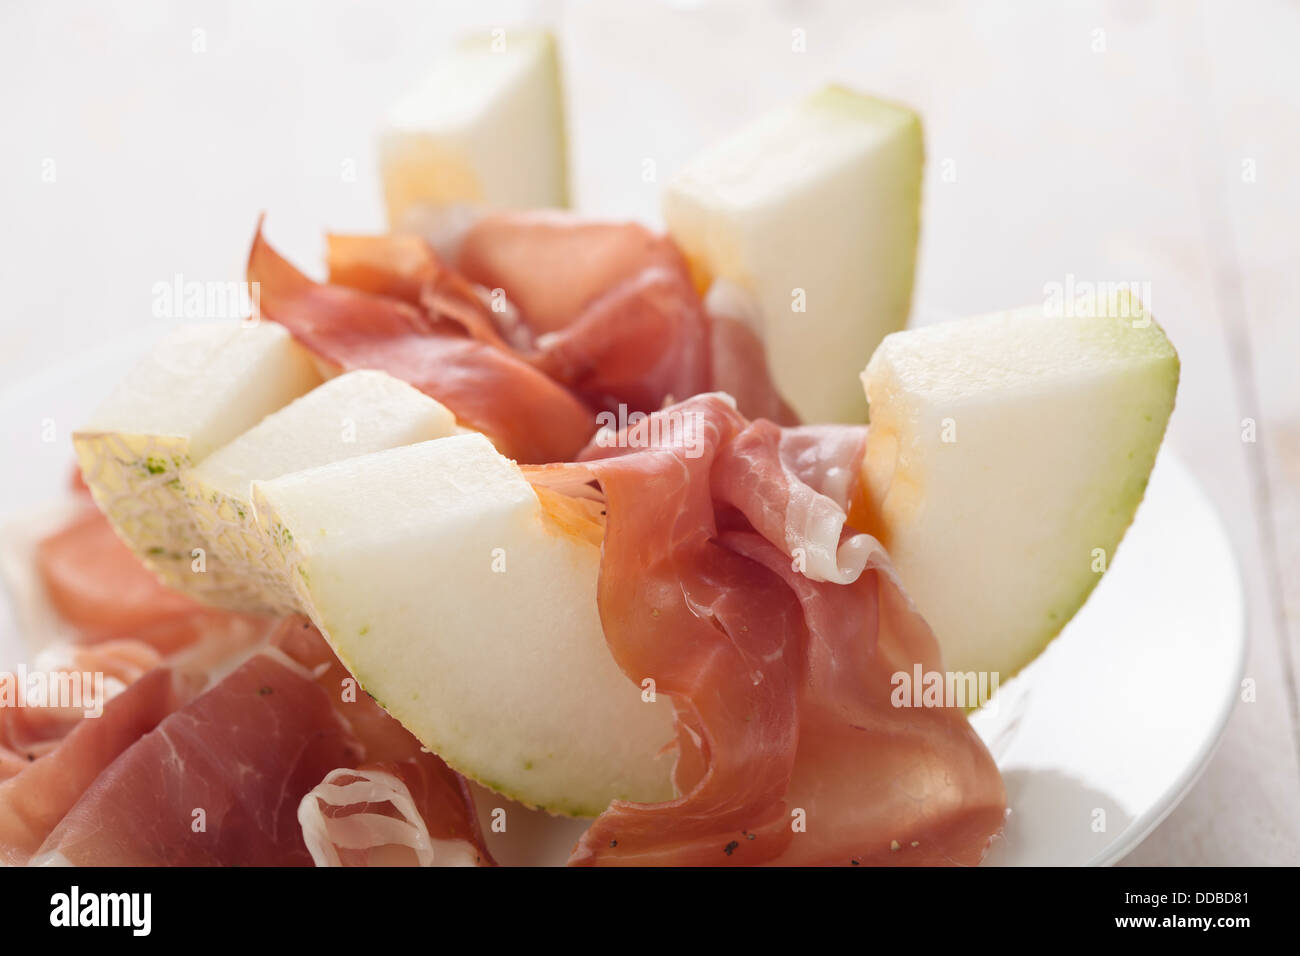 Melon with parma ham - Stock Image